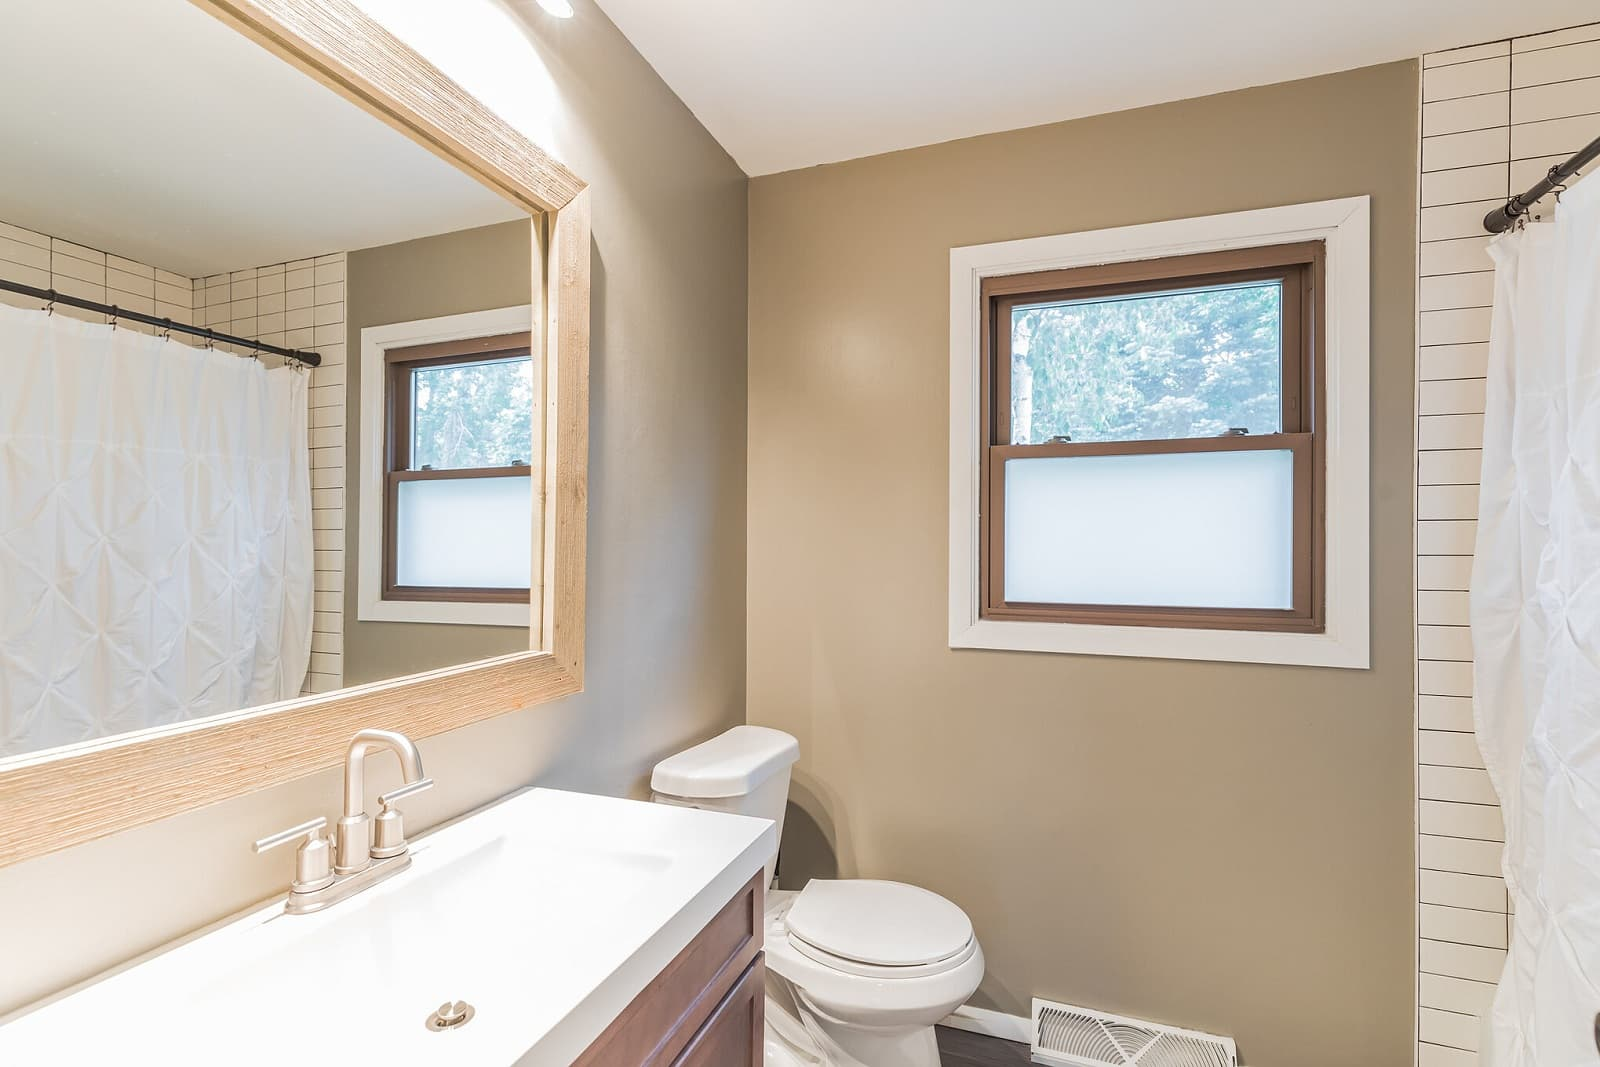 Real Estate Photography in Minneapolis - MN - Bathroom View